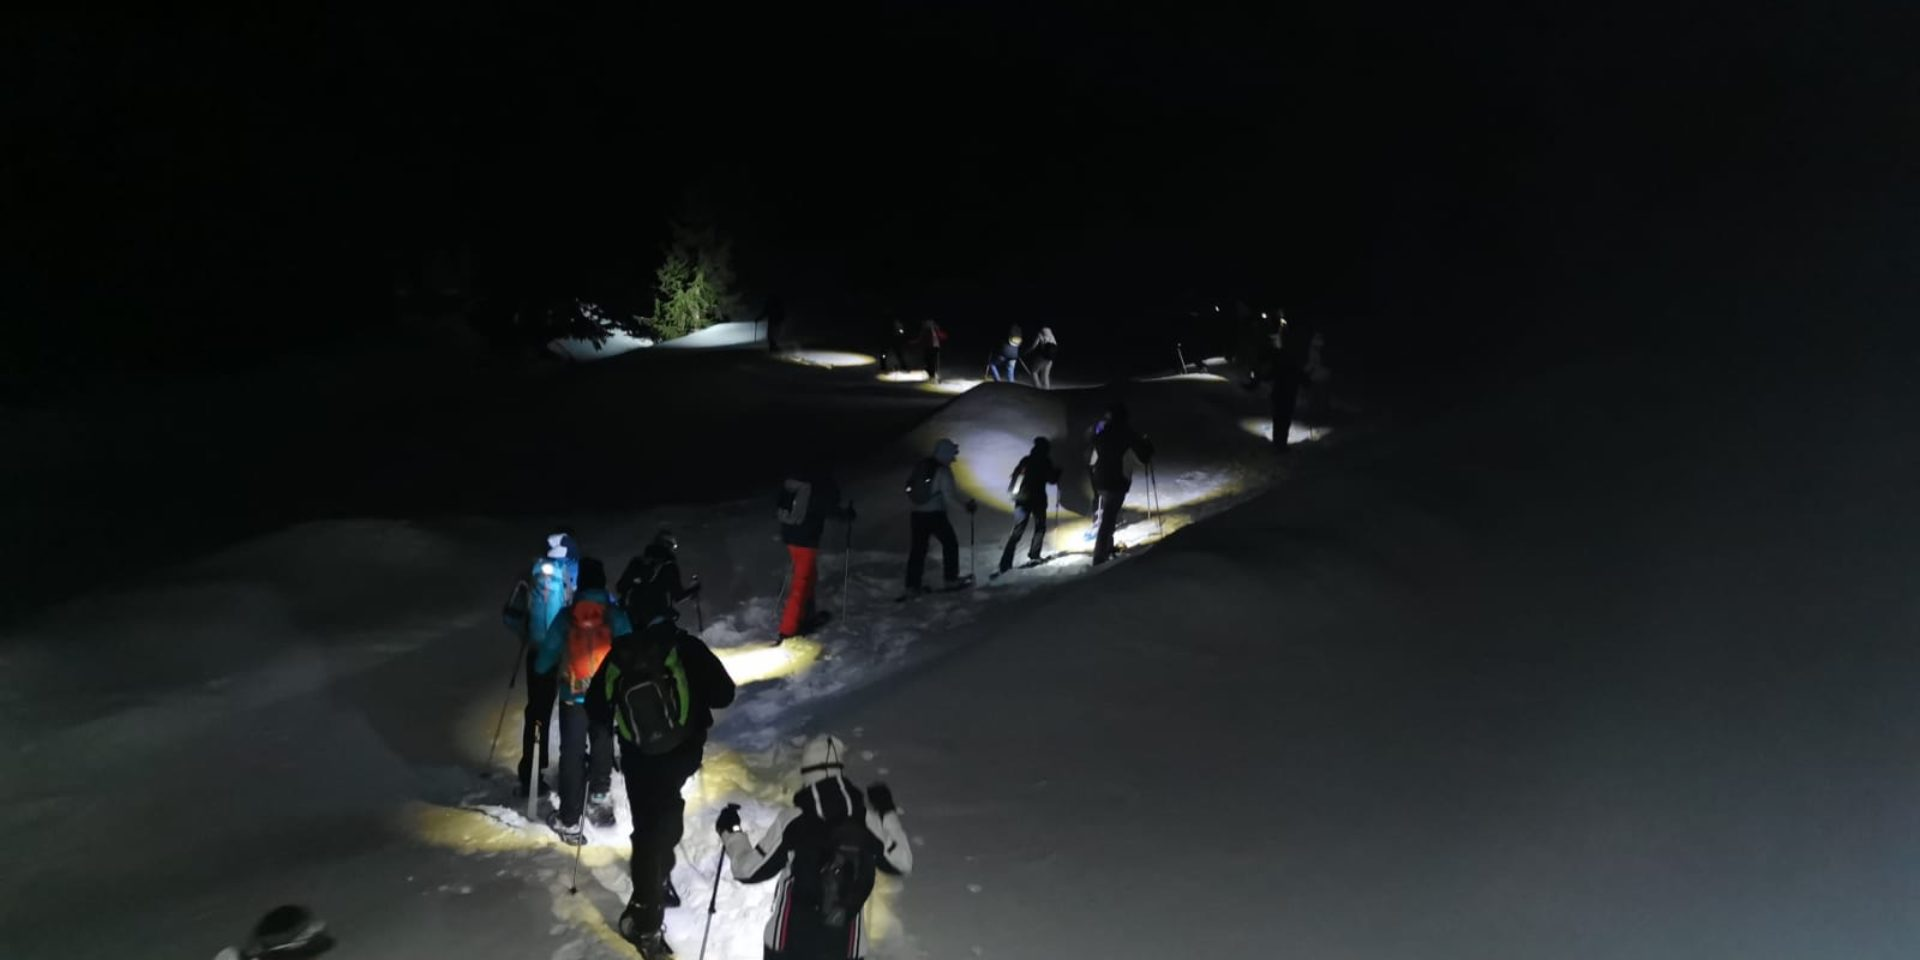 Snowshoe excursion with aperitif under the stars